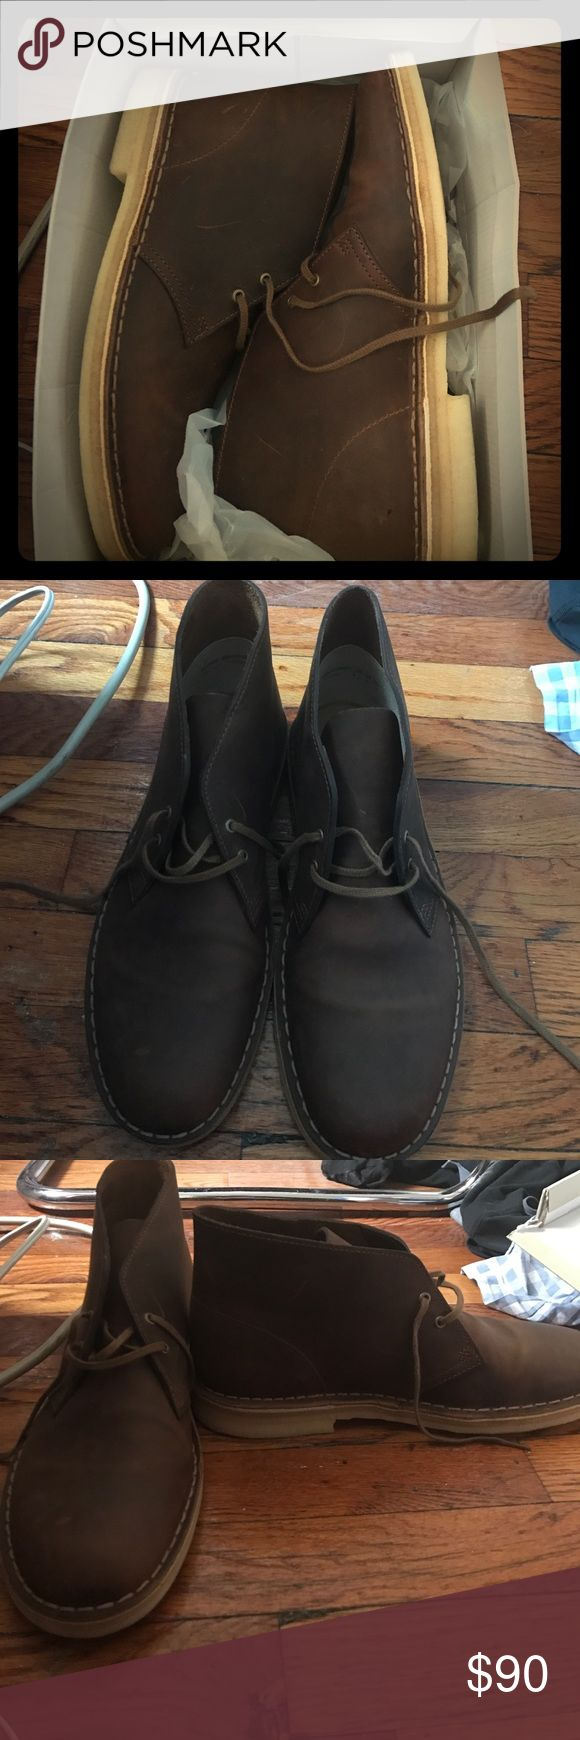 Mens Clarks Desert BT Core Leather boots BRAND NEW Men's Clarks desert bt core boots - size 9 dark brown leather BRAND NEW NEVER BEEN WORN rubber sole lace up Clarks Shoes Boots